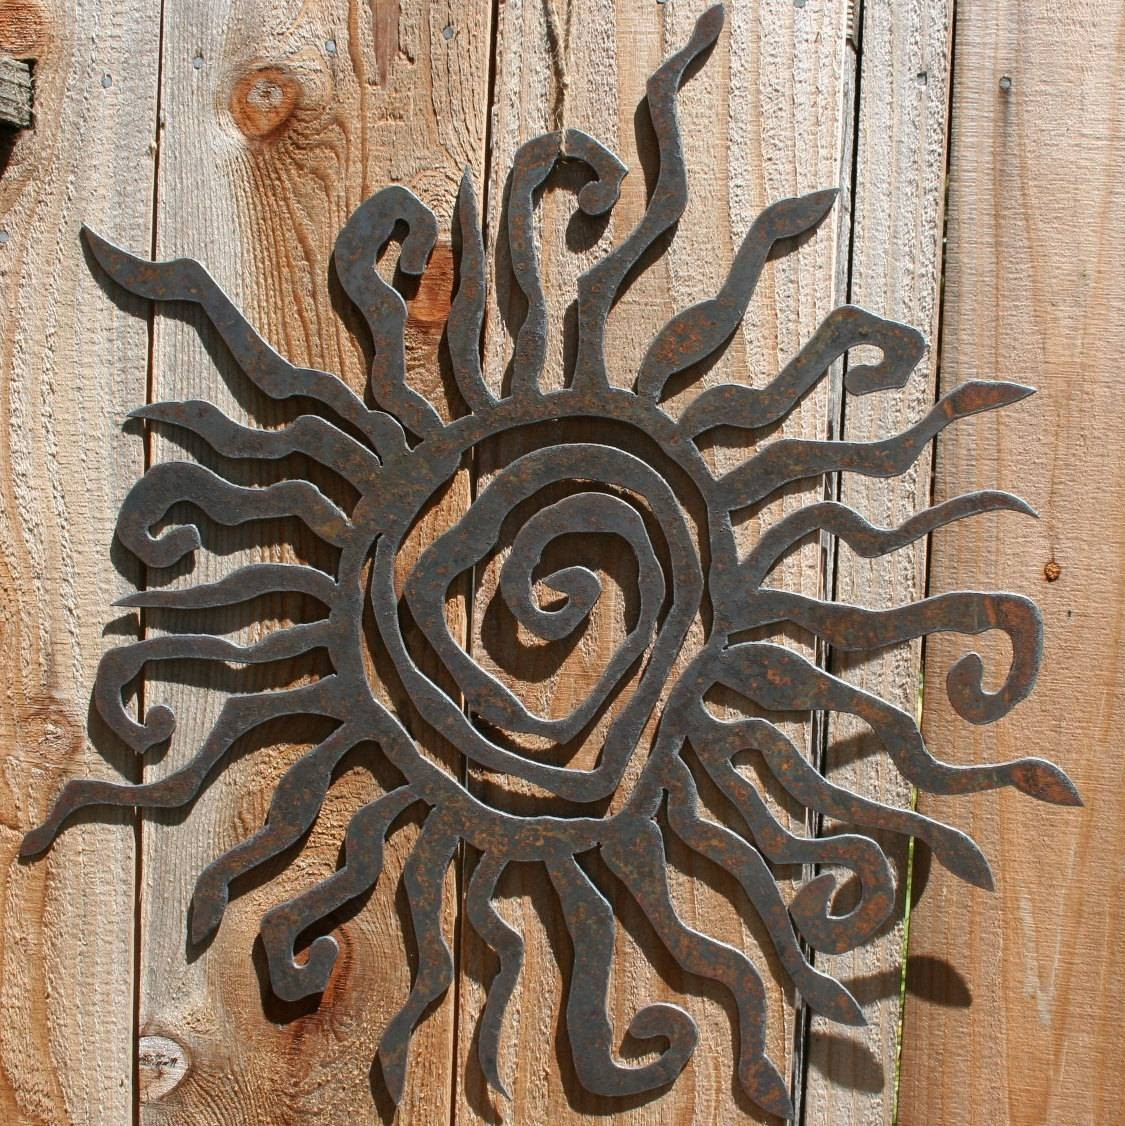 Best ideas about Large Outdoor Metal Wall Art . Save or Pin 25 Inspirations of Metal Outdoor Wall Art Now.